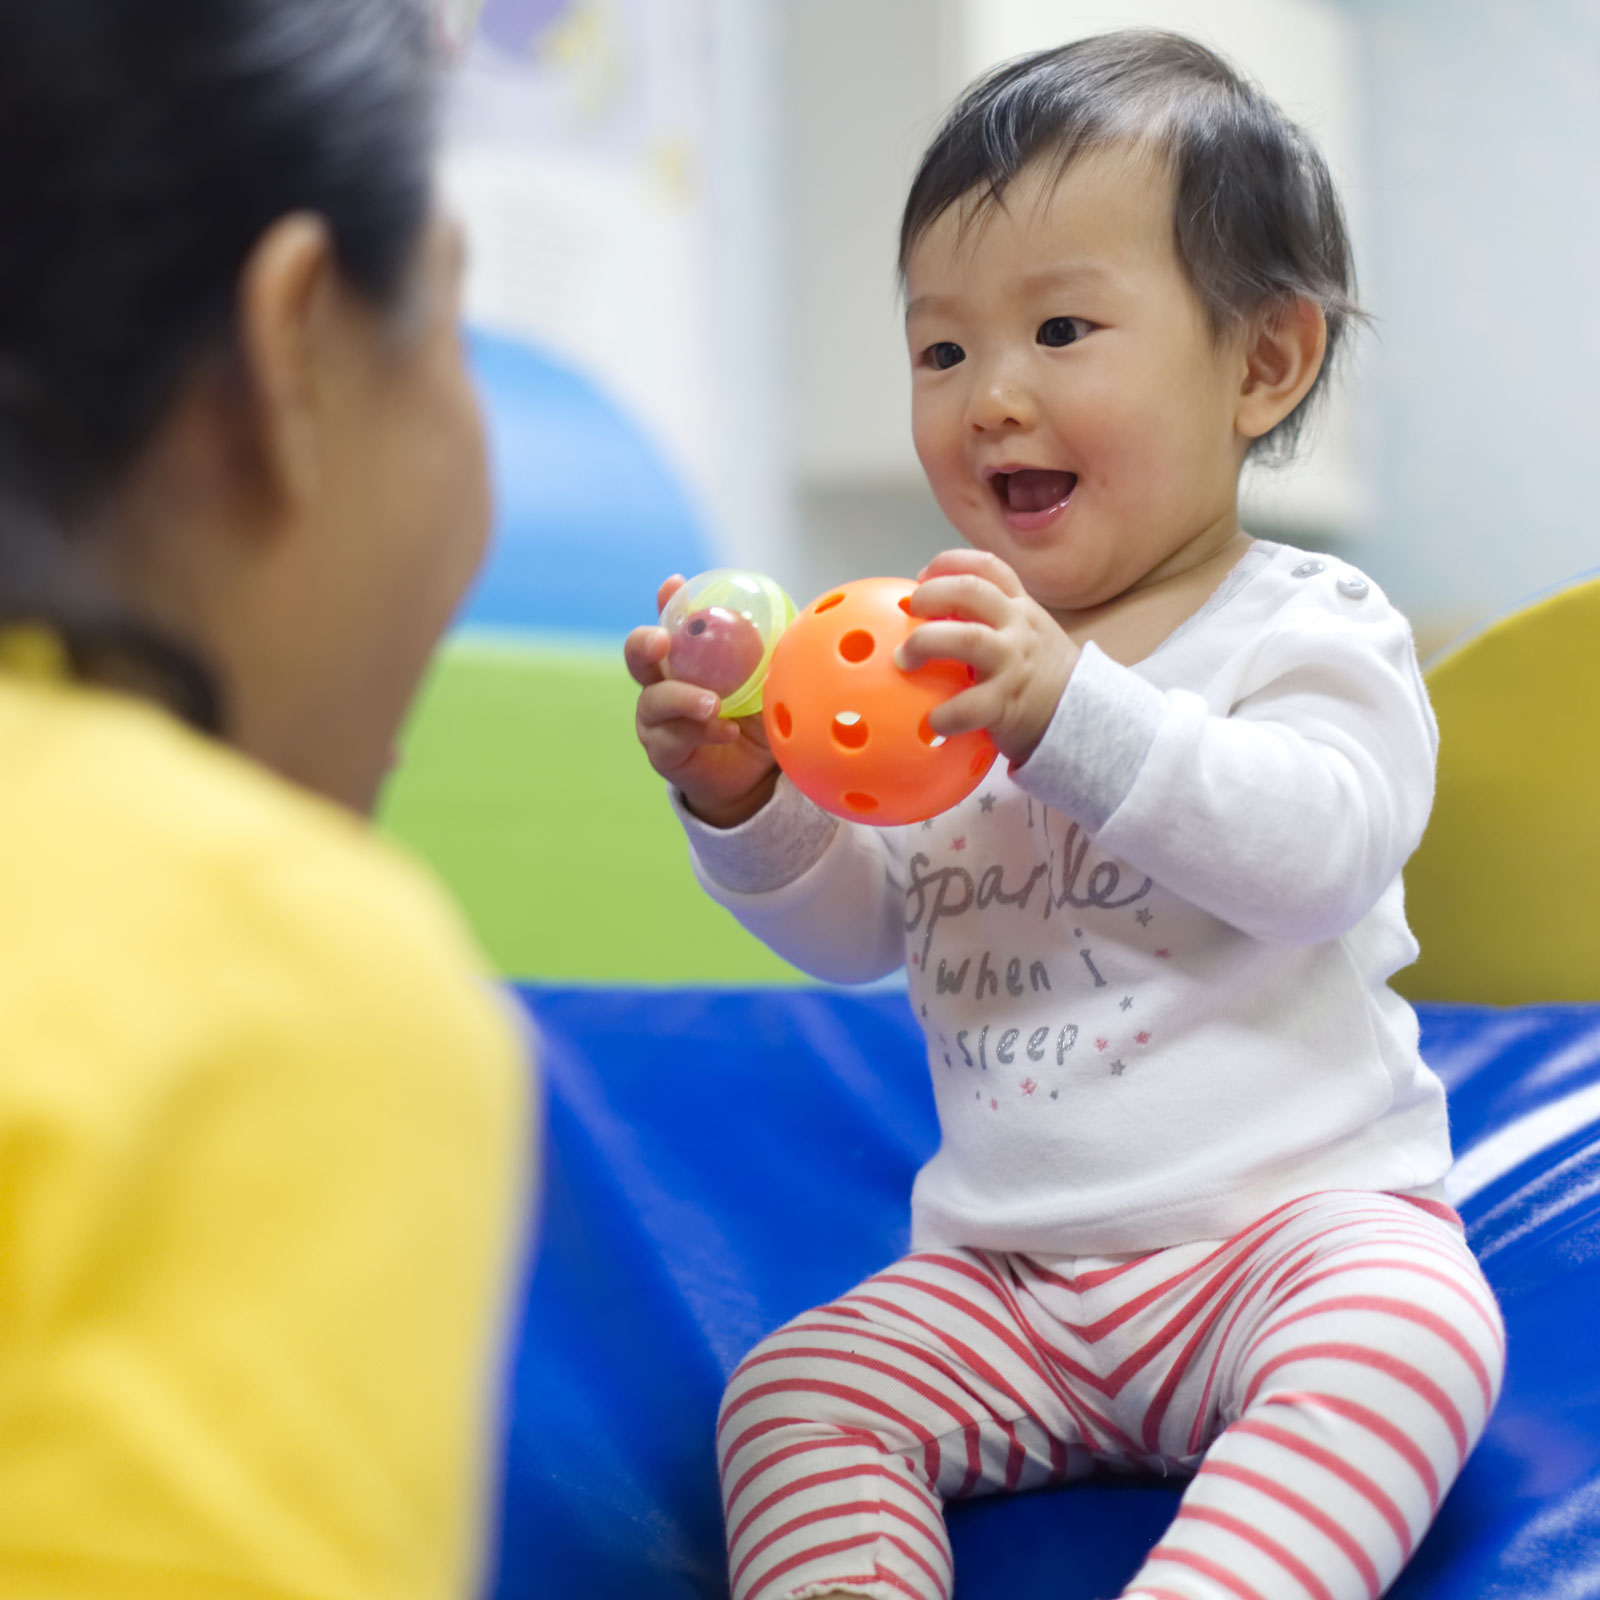 Smiling baby holding a ball and looking at her mom